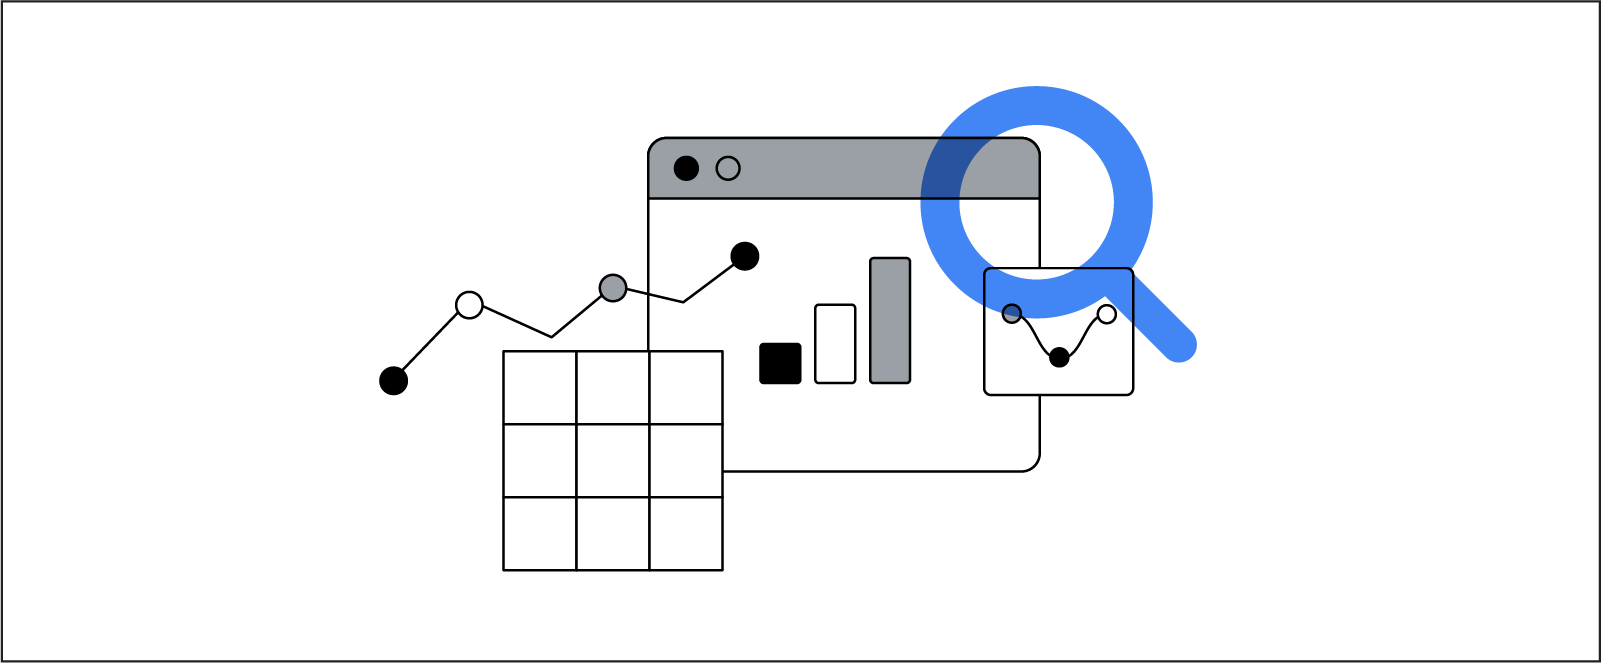 A stylized array of line drawings of data charting and graphing symbols overlaid with a blue magnifying glass.